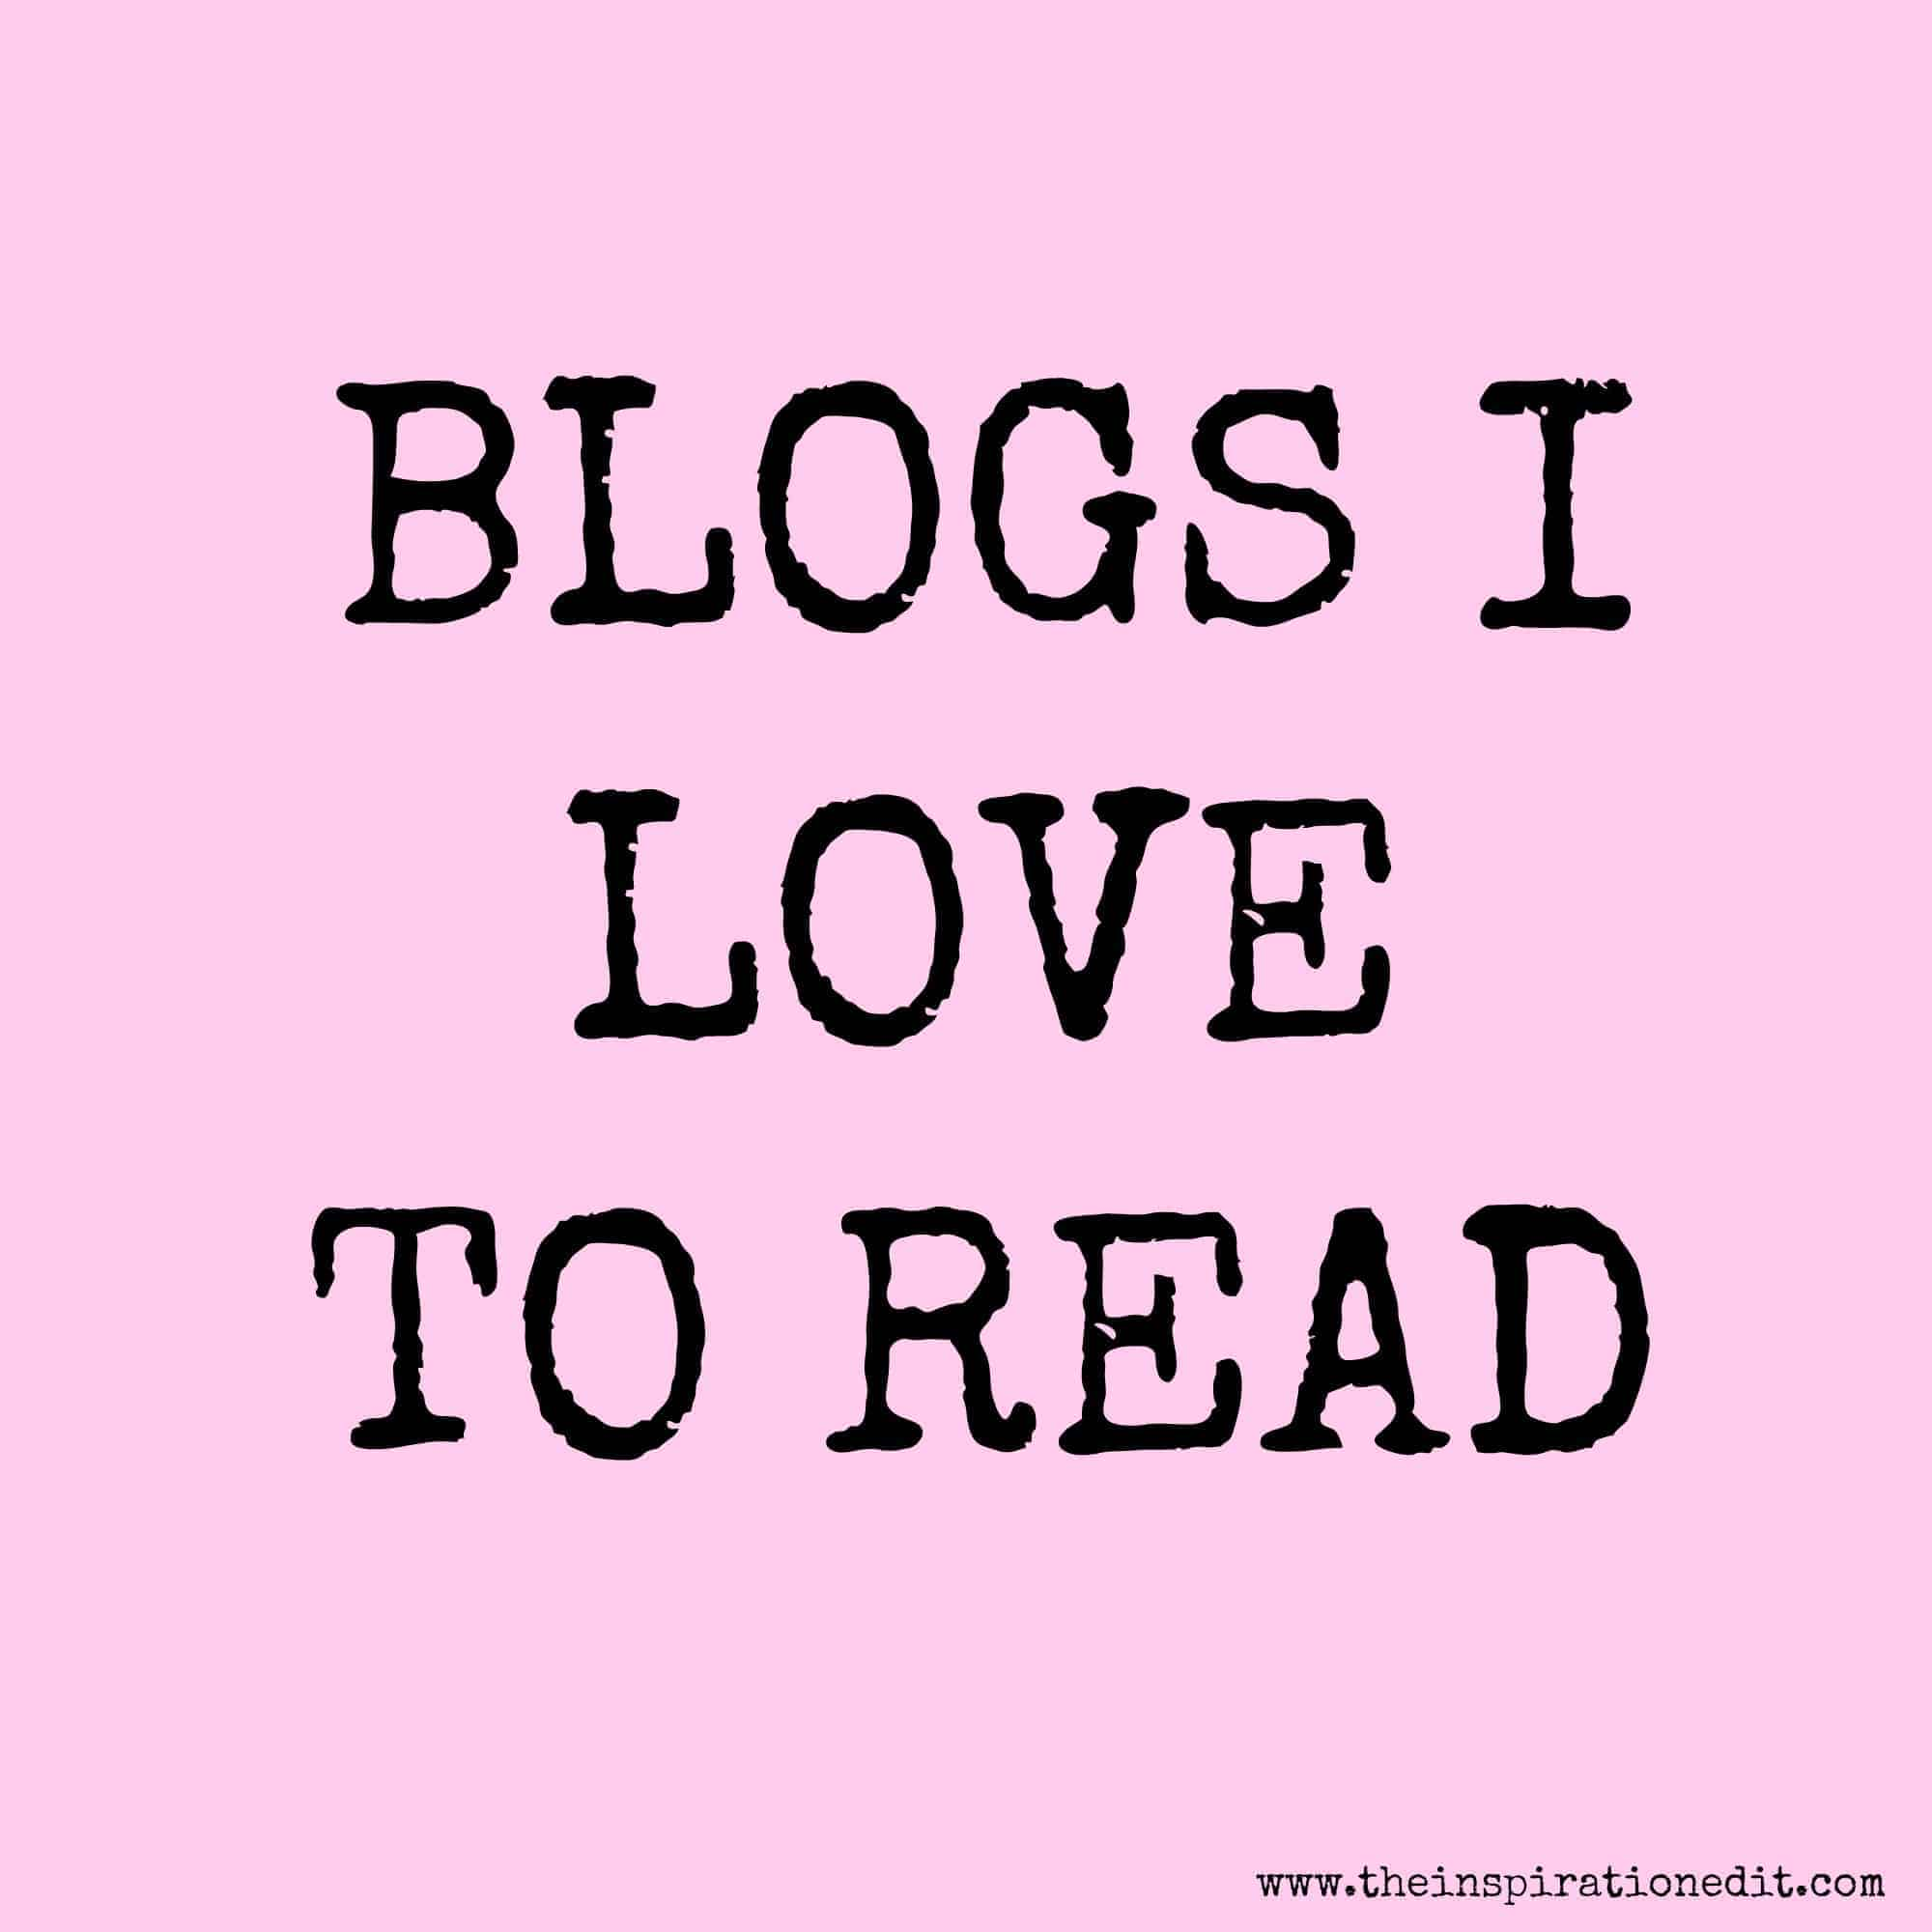 blogs i love to read